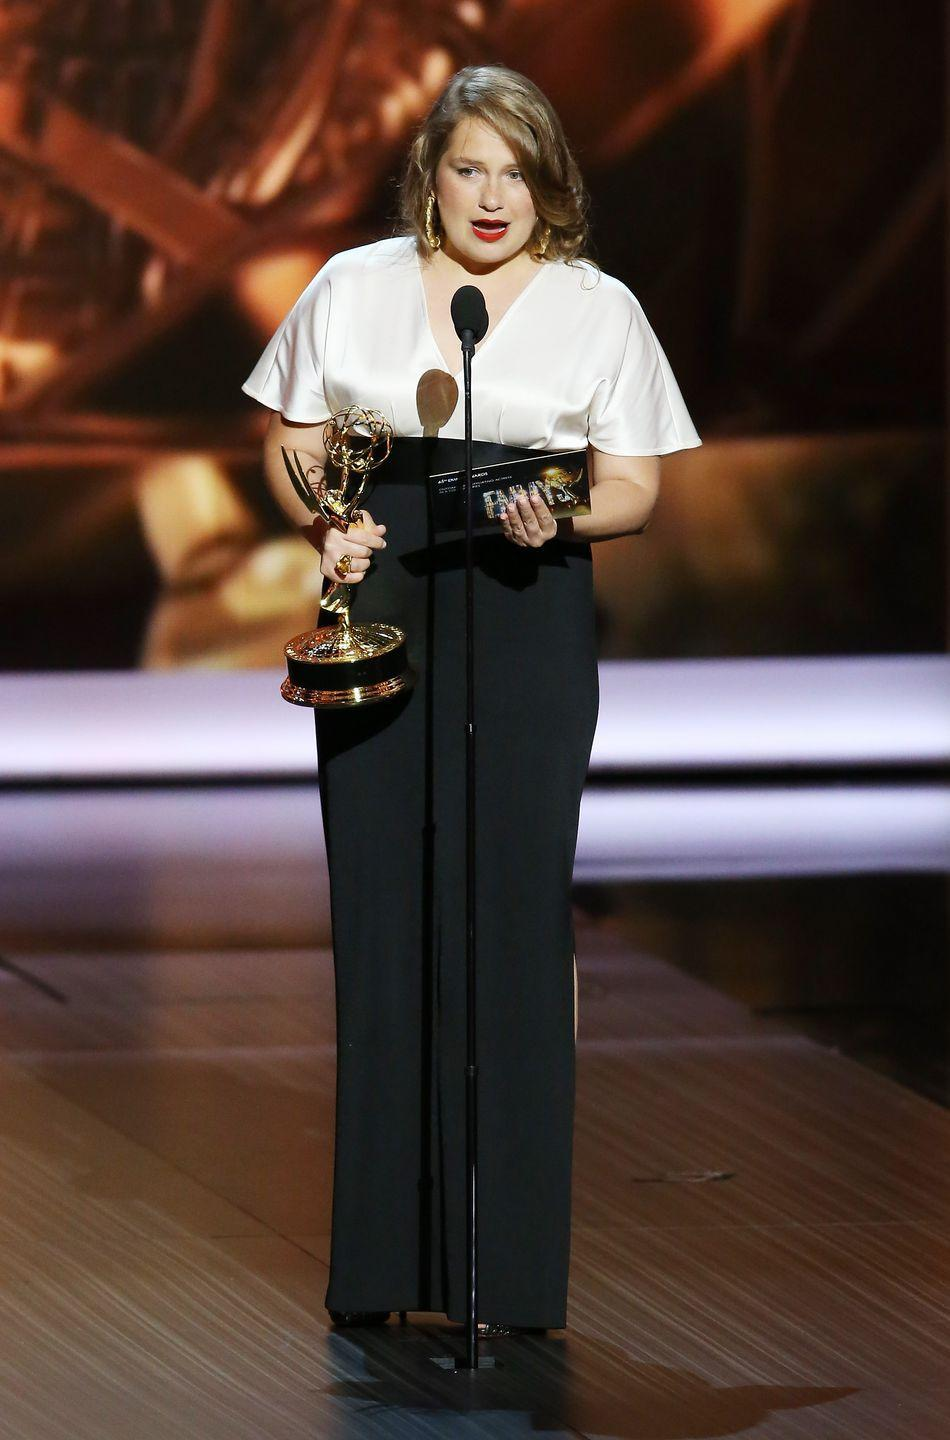 """<p>One of the most annoying things about awards shows is that sometimes the acceptance speeches are insufferably long. But Merritt Weaver went in the opposite direction: when she won for <em>Nurse Jackie,</em> she simply said, """"Thank you so much! Um… I gotta go. Bye."""" </p>"""